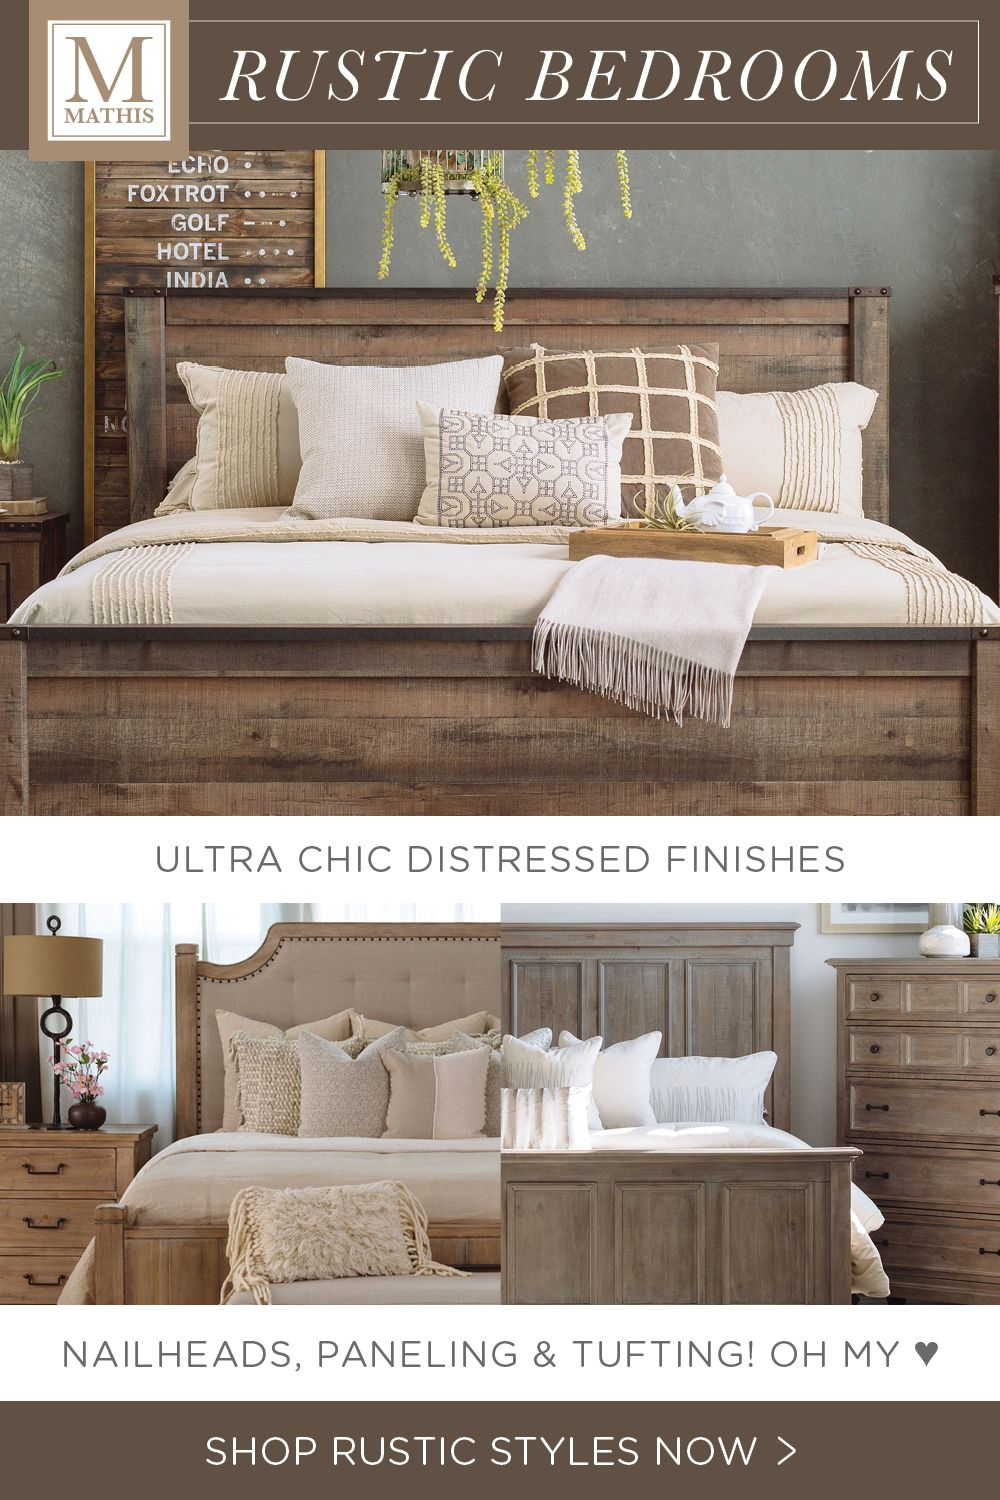 Check out these rustic modern platform beds at an